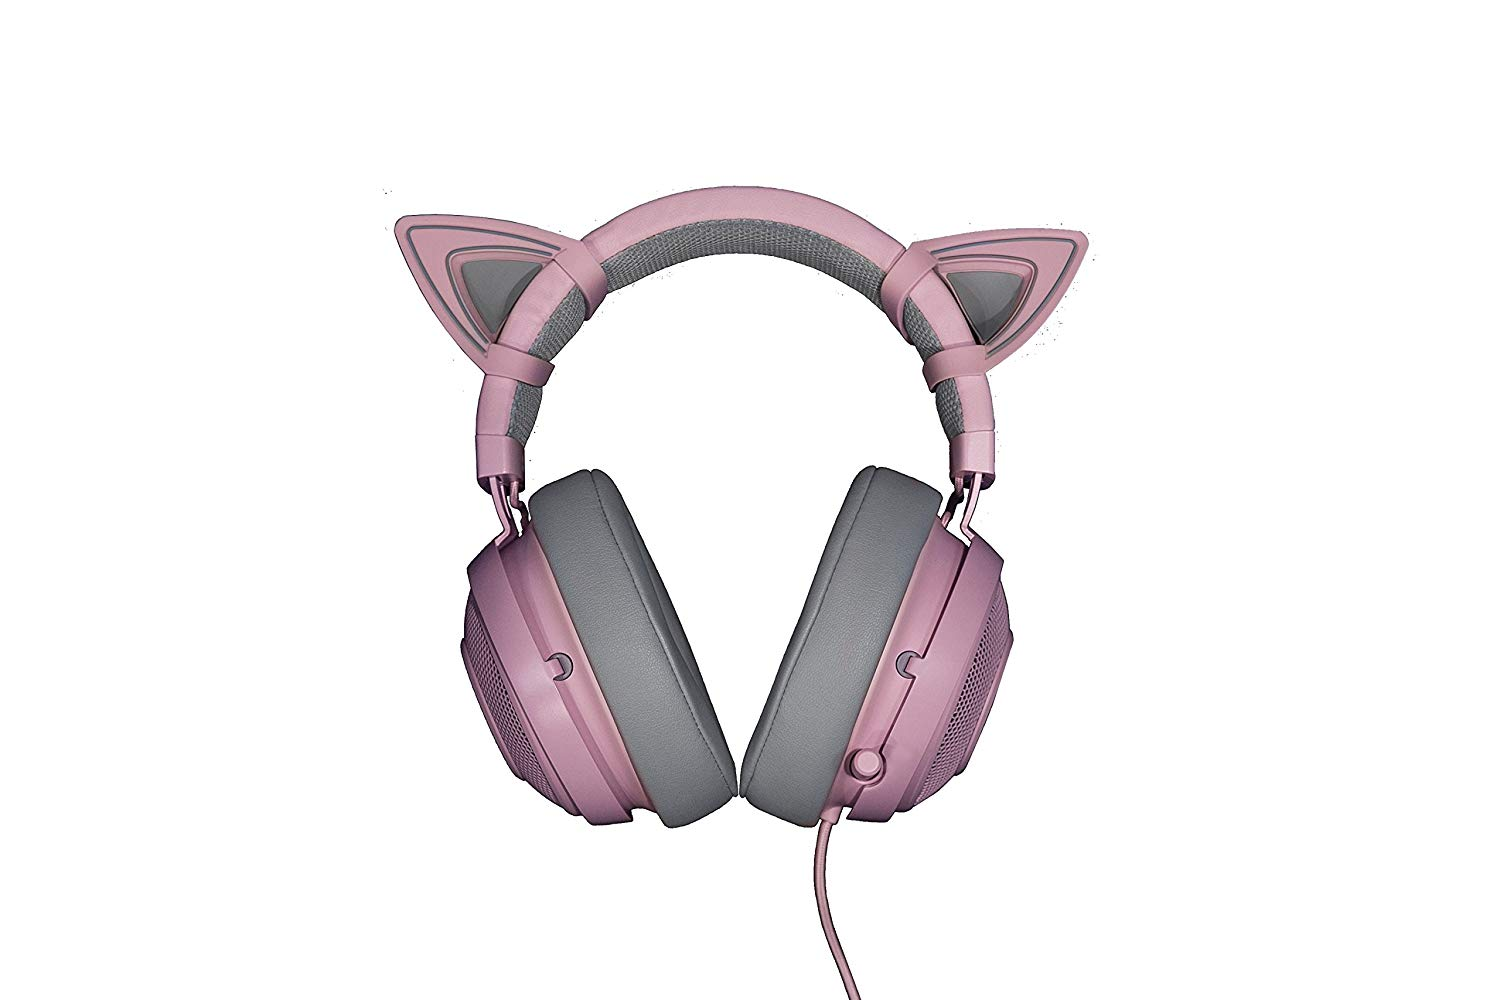 Tai mèo Kitty Ears for Razer Kraken - Quartz Edition